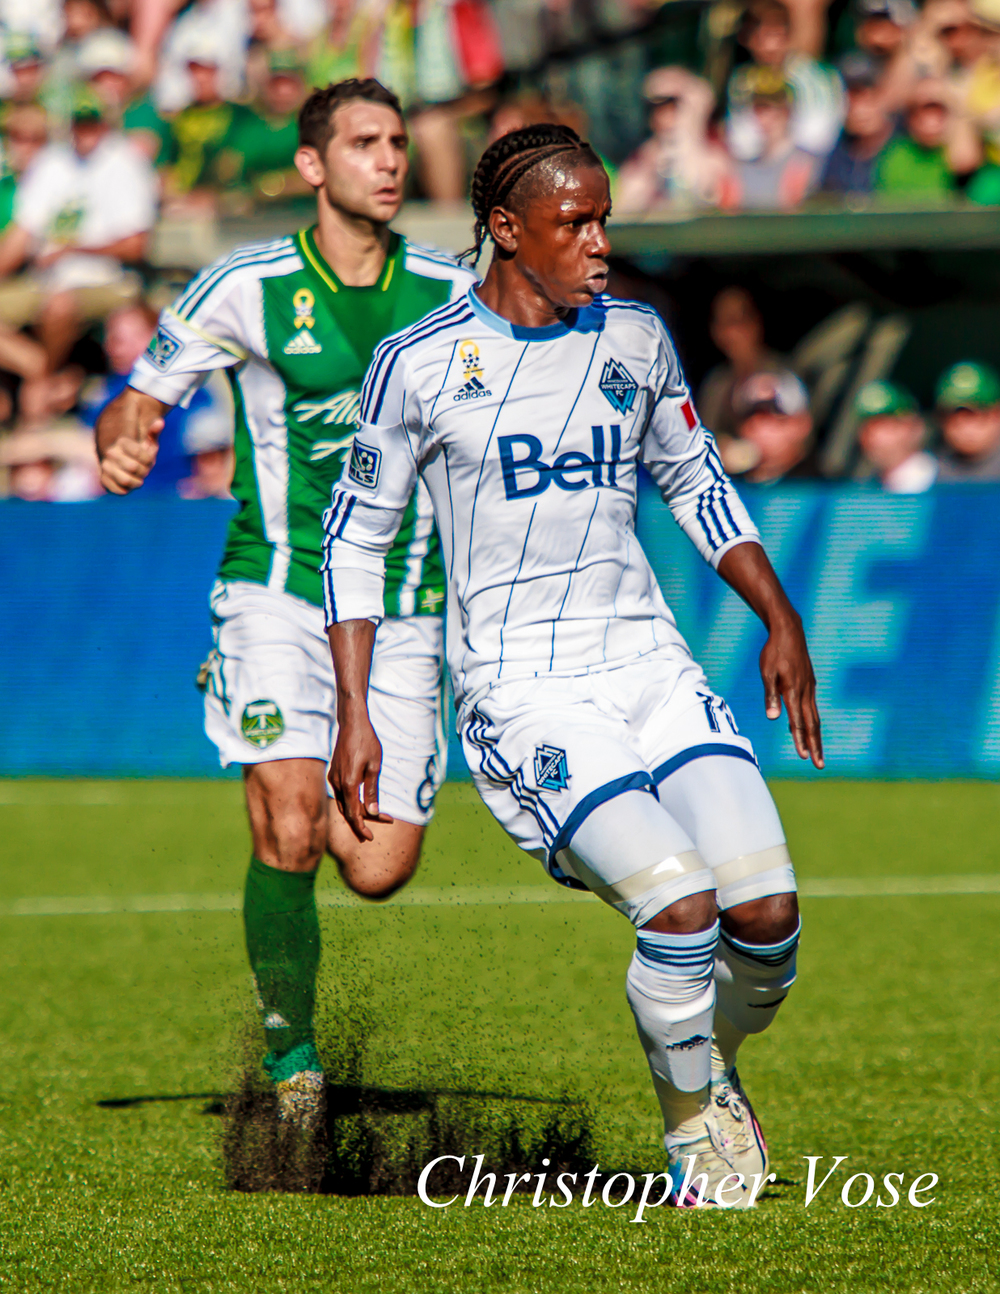 2014-09-20 Diego Valeri and Darren Mattocks.jpg